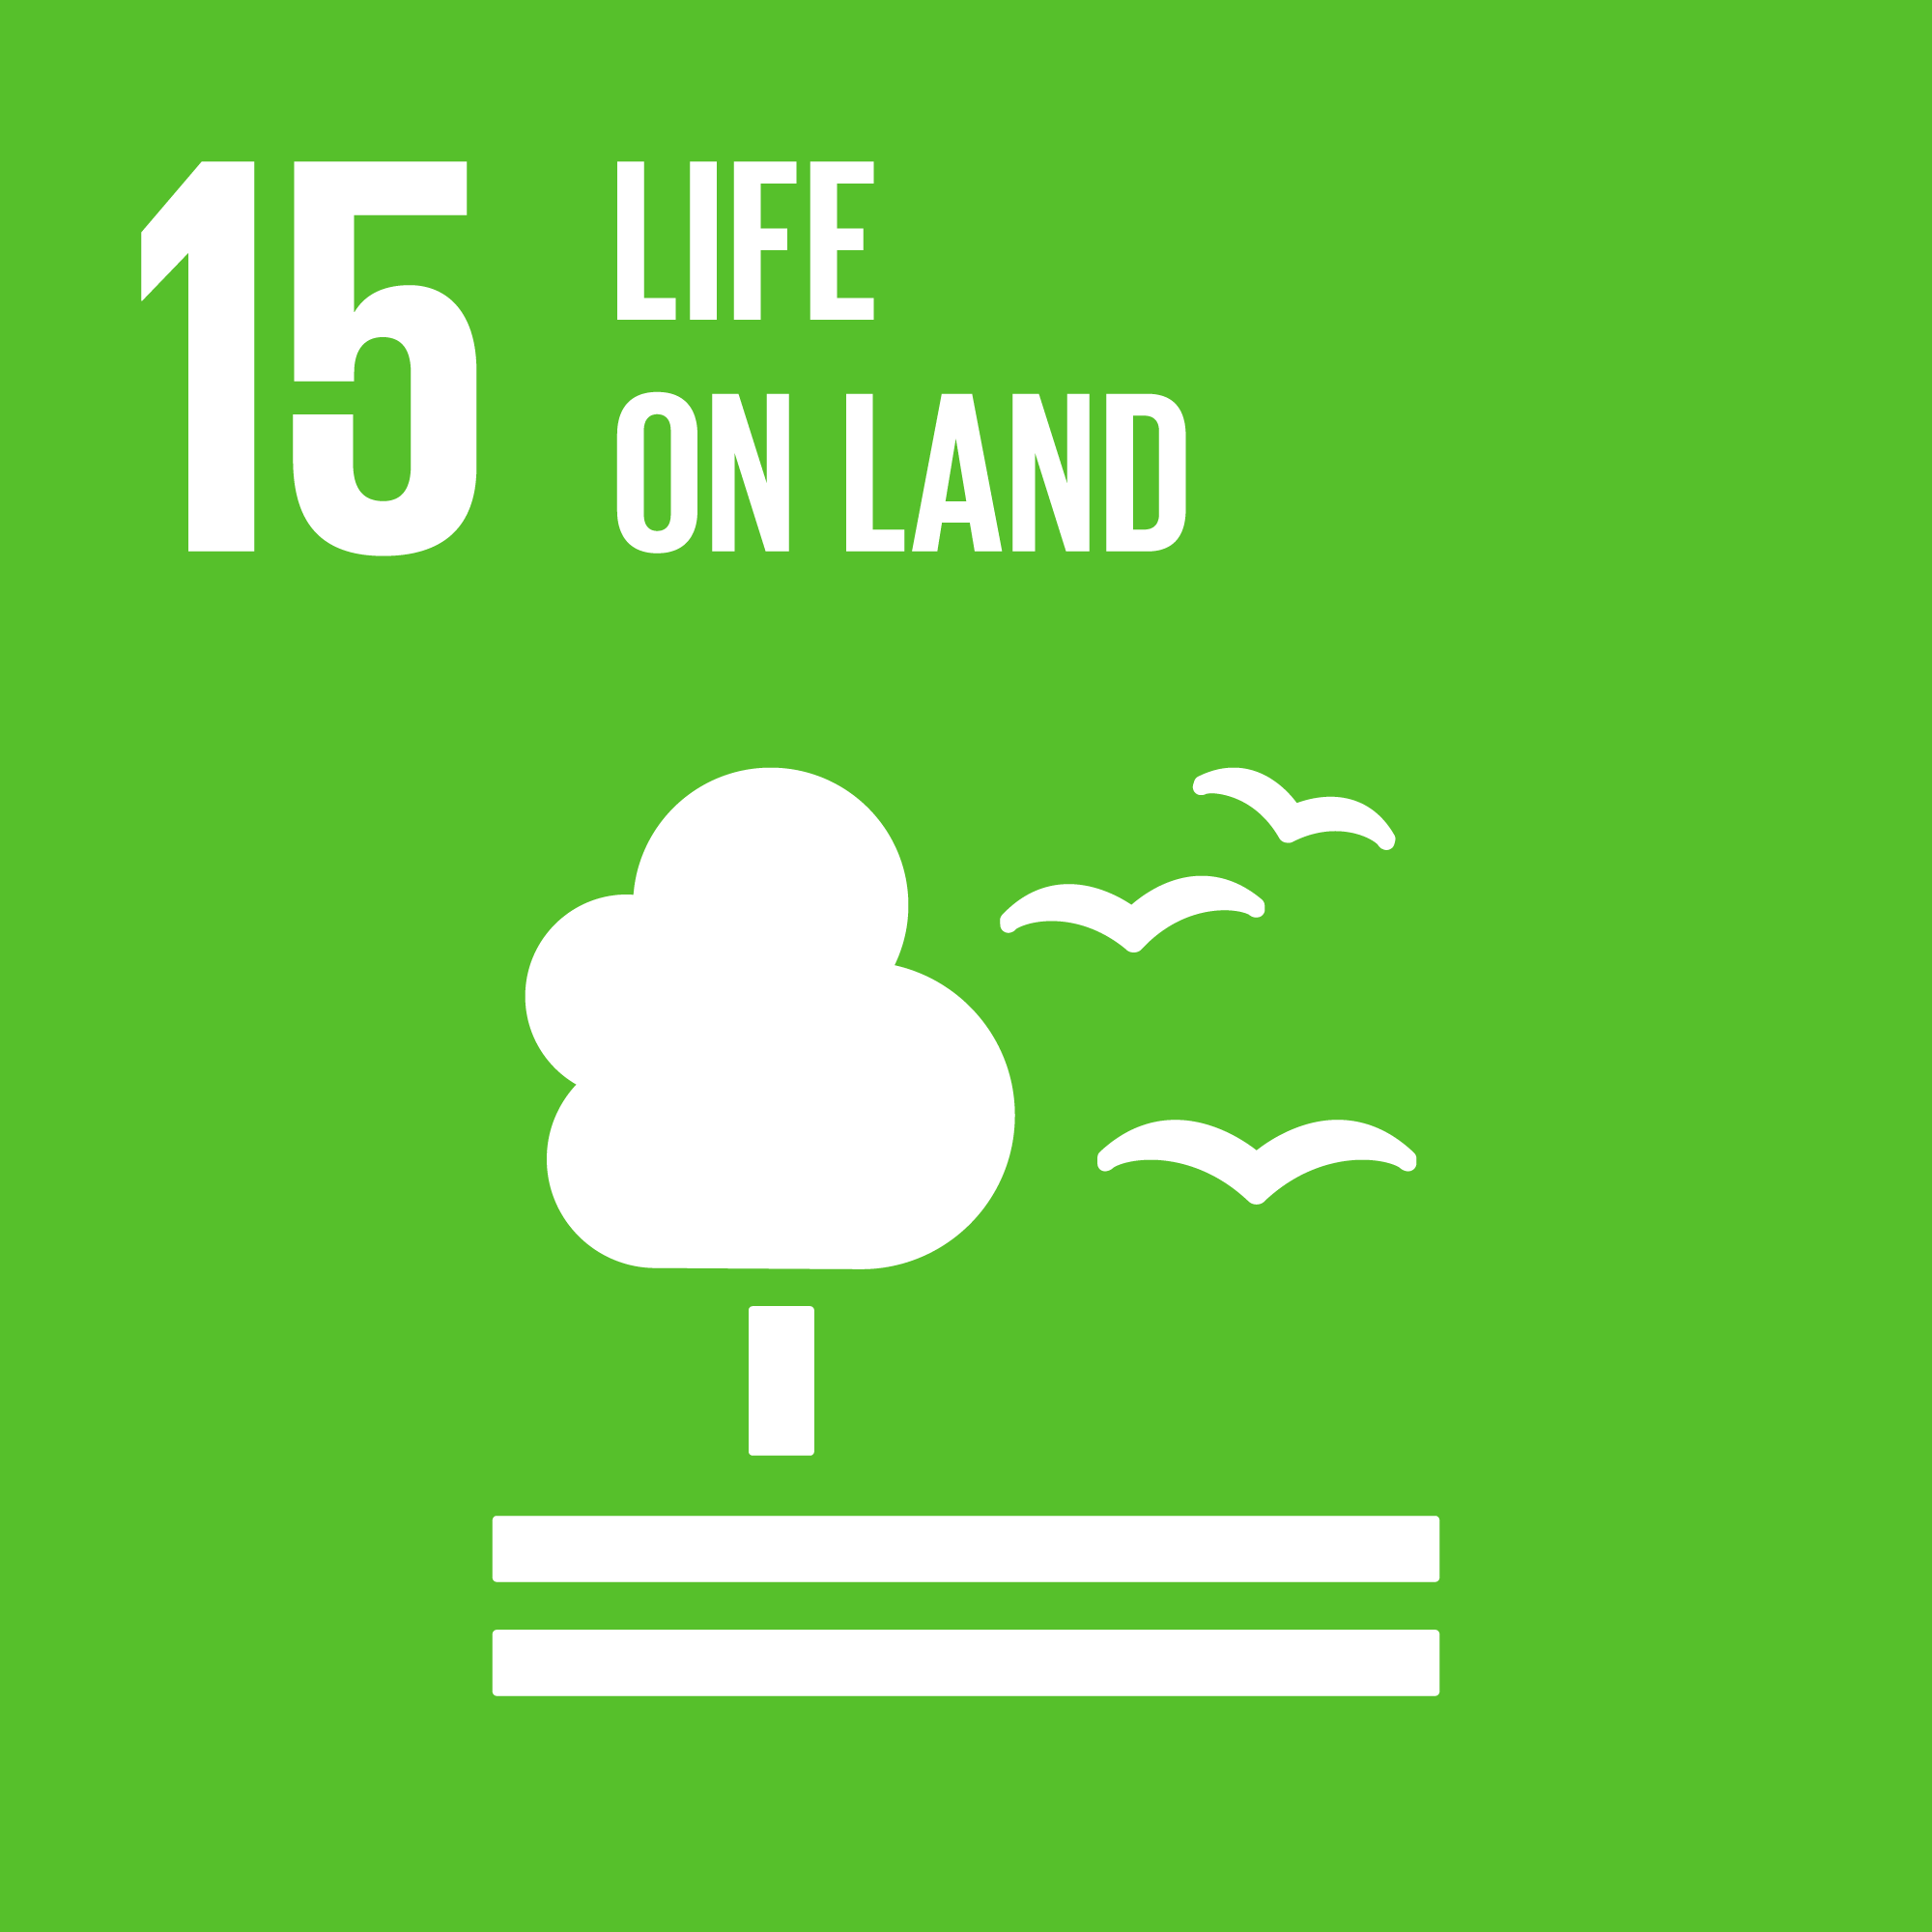 Sustainable Development Goal 15: Biodiversity / Life on land